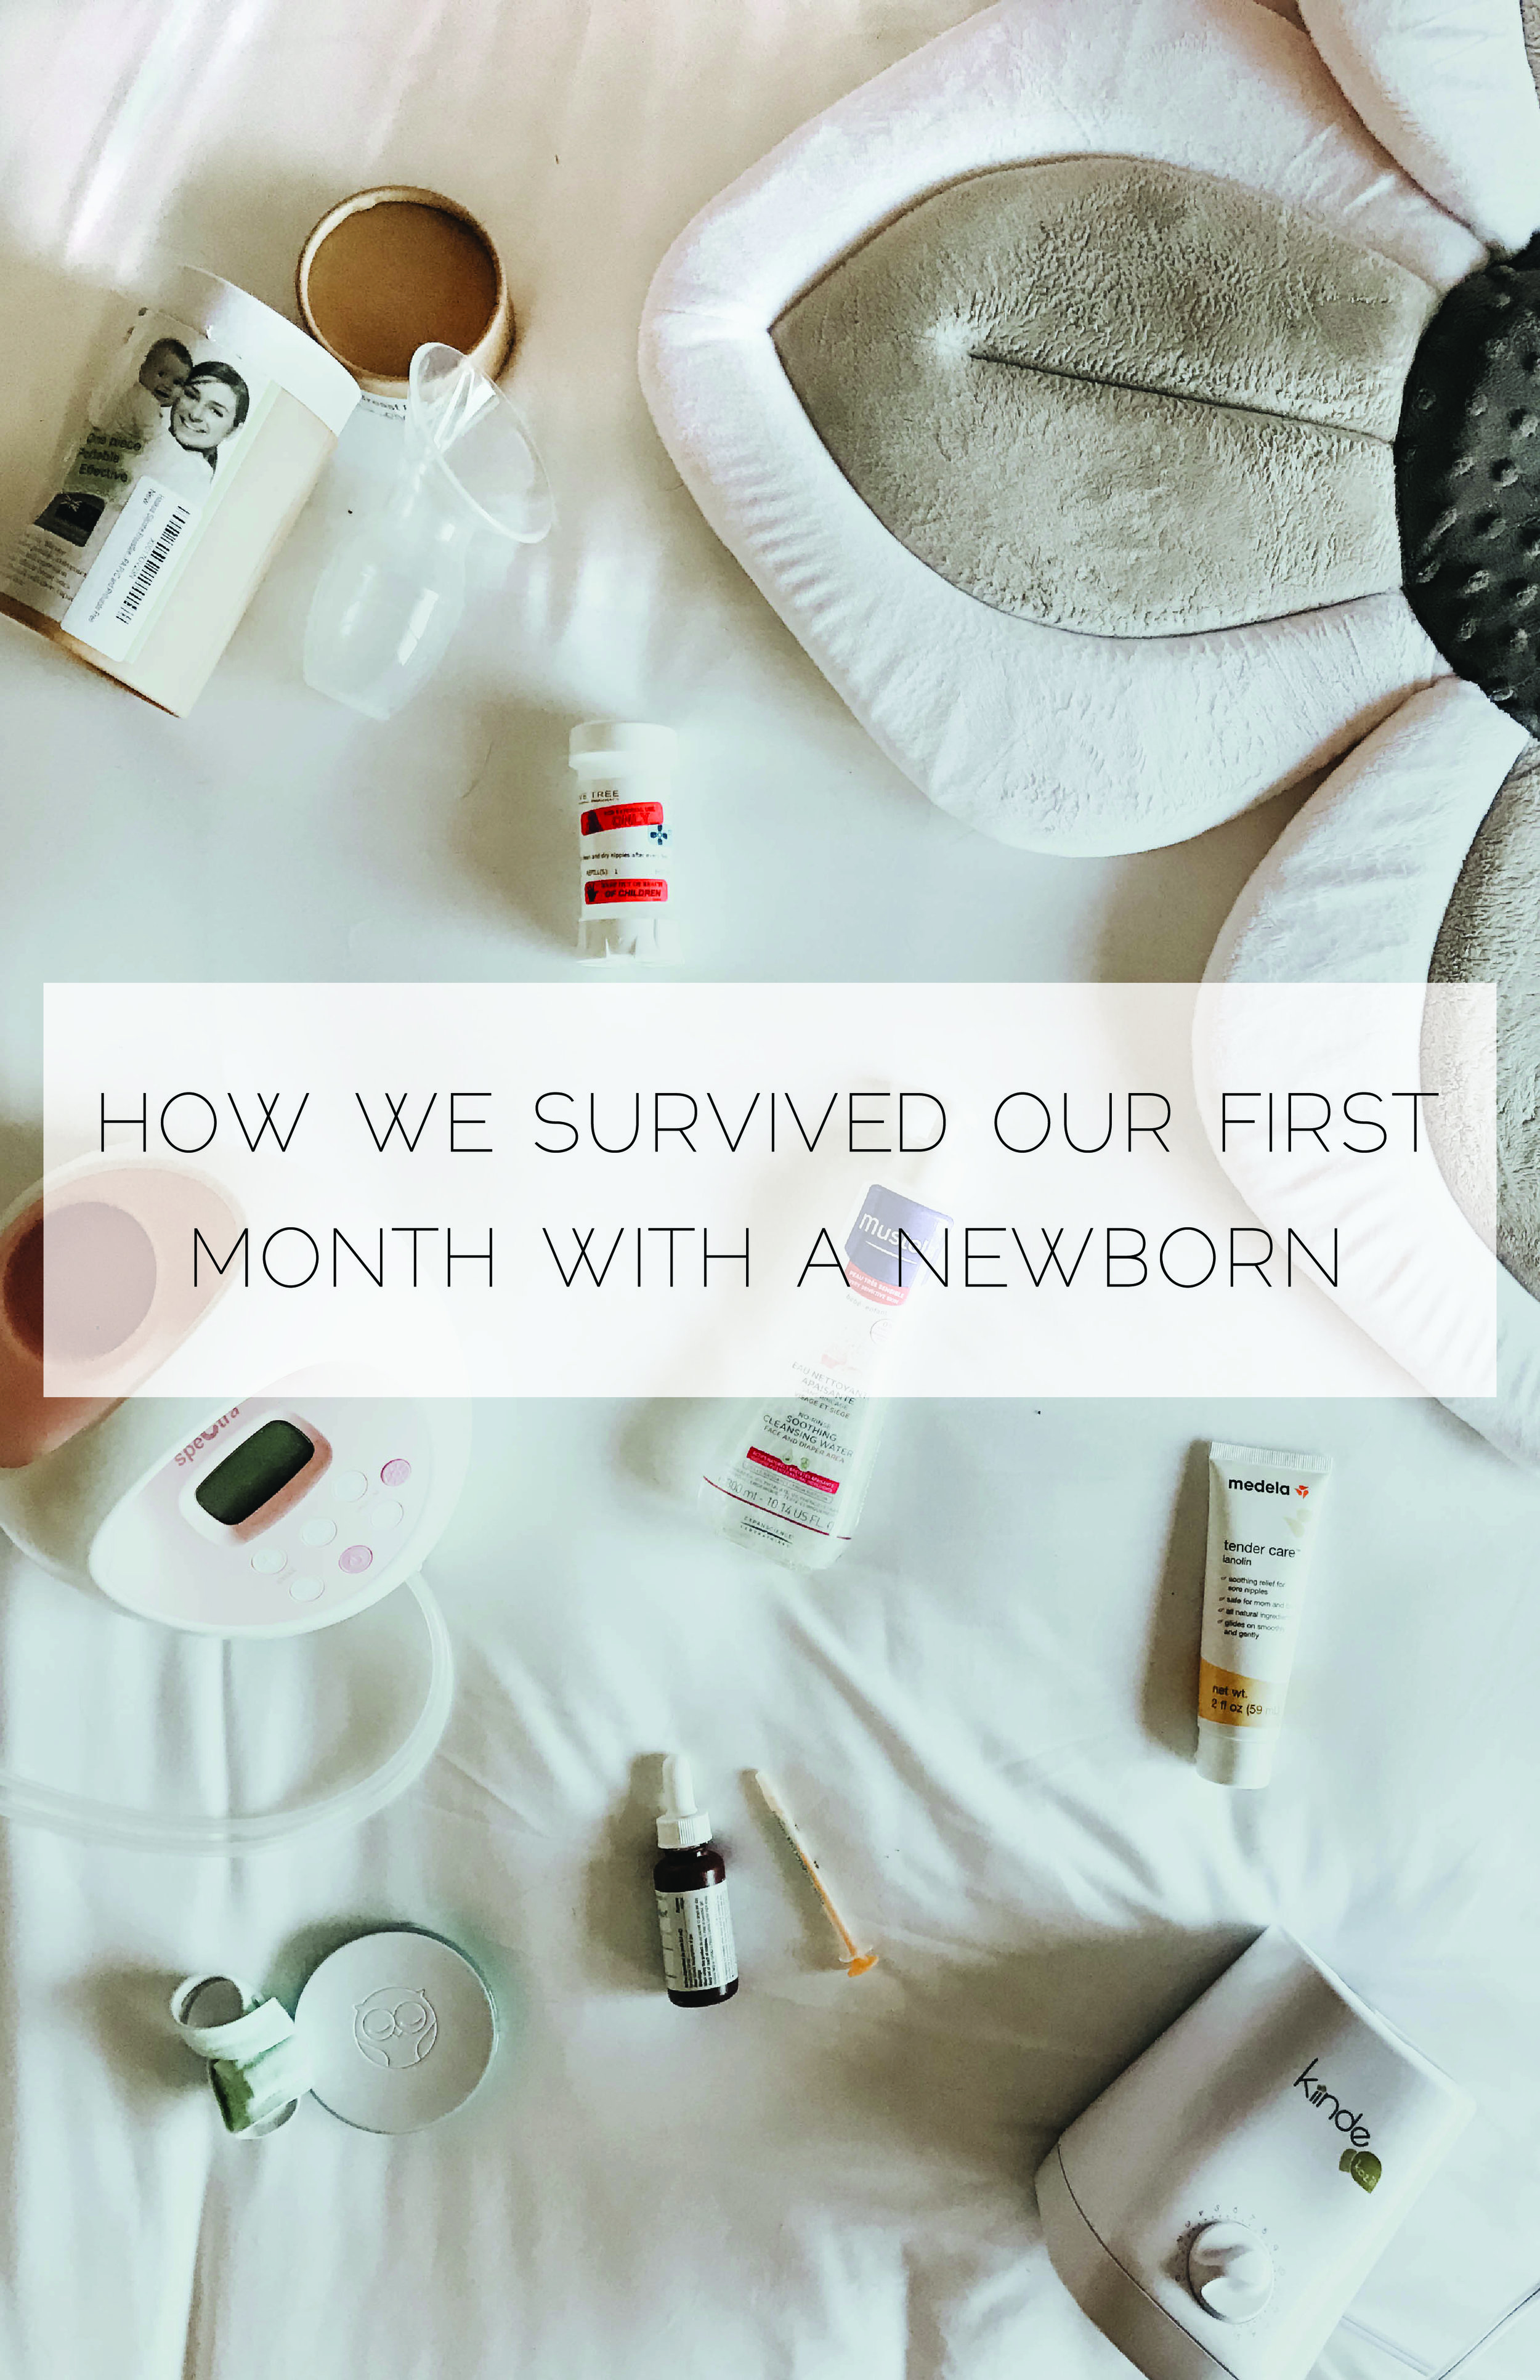 How we Survived Our First Month with a Newborn (Our Newborn Essentials) from mbstyled.com a Lifestyle Blog